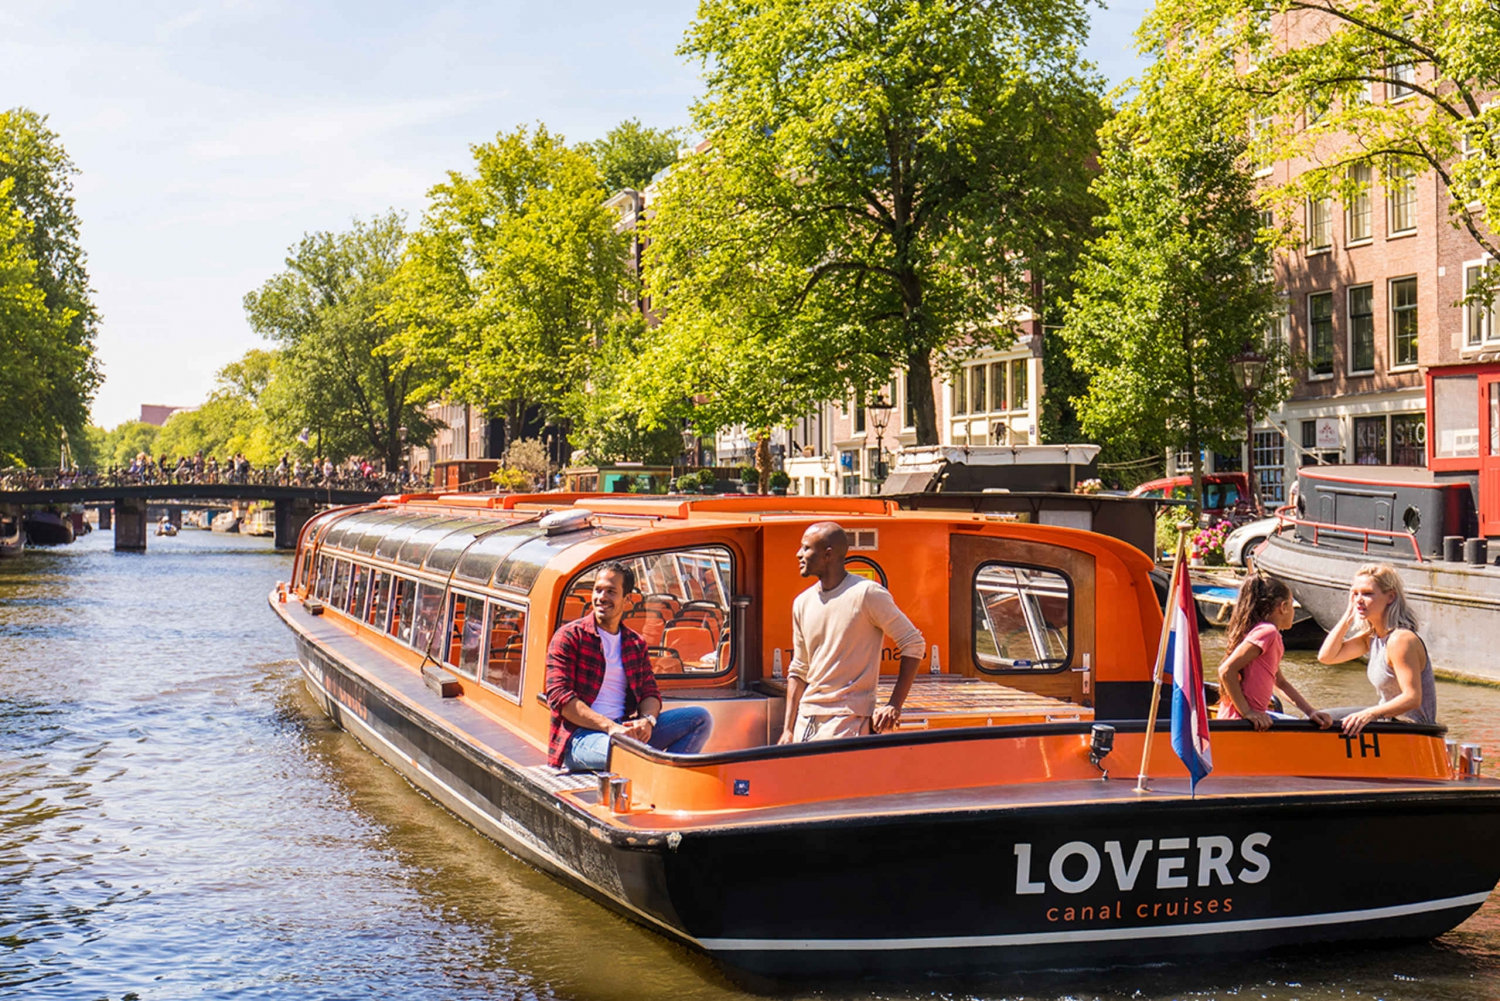 Nightlife & Canal Cruise Ticket